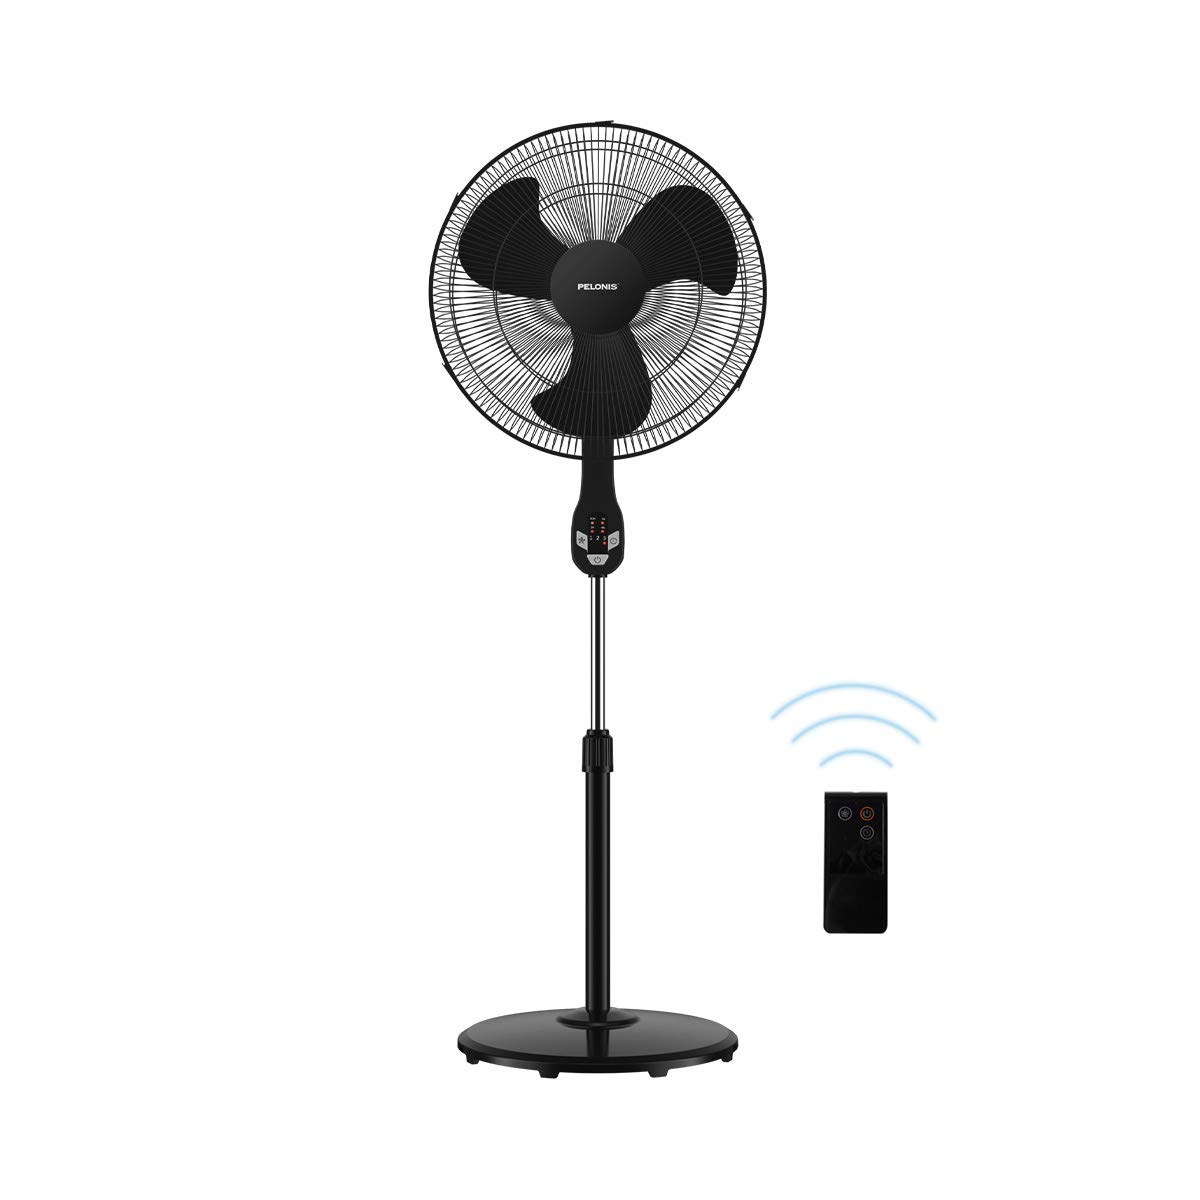 Pelonis FS45-18UR 18 Quiet Oscillating Pedestal Fan with LED Display, Remote Control, 3 Speeds and Modes, 7h Programmed Timer for Home and Office, Glossy Black, 18 Inch